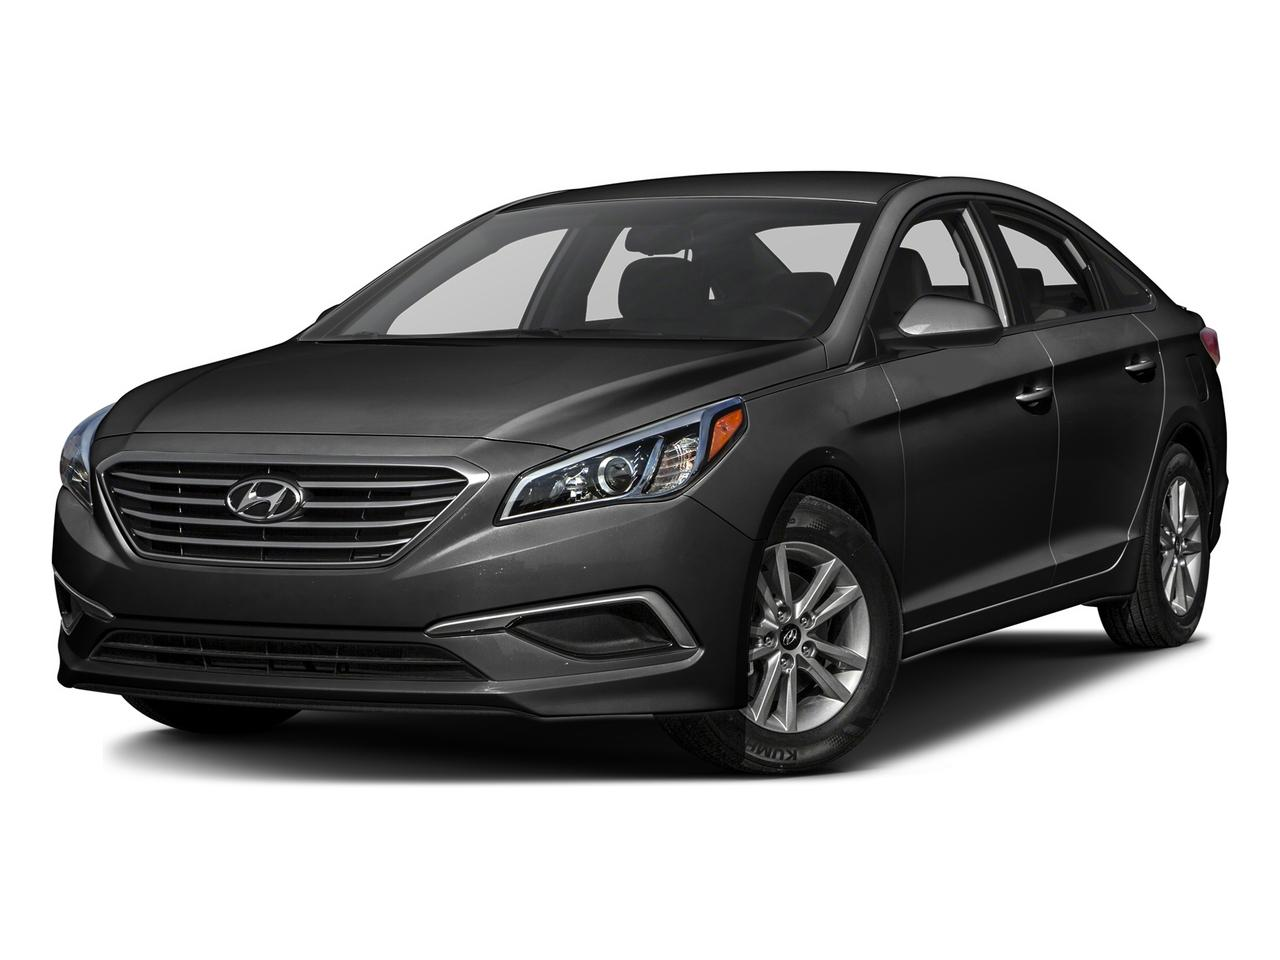 2016 Hyundai Sonata Vehicle Photo in Moon Township, PA 15108